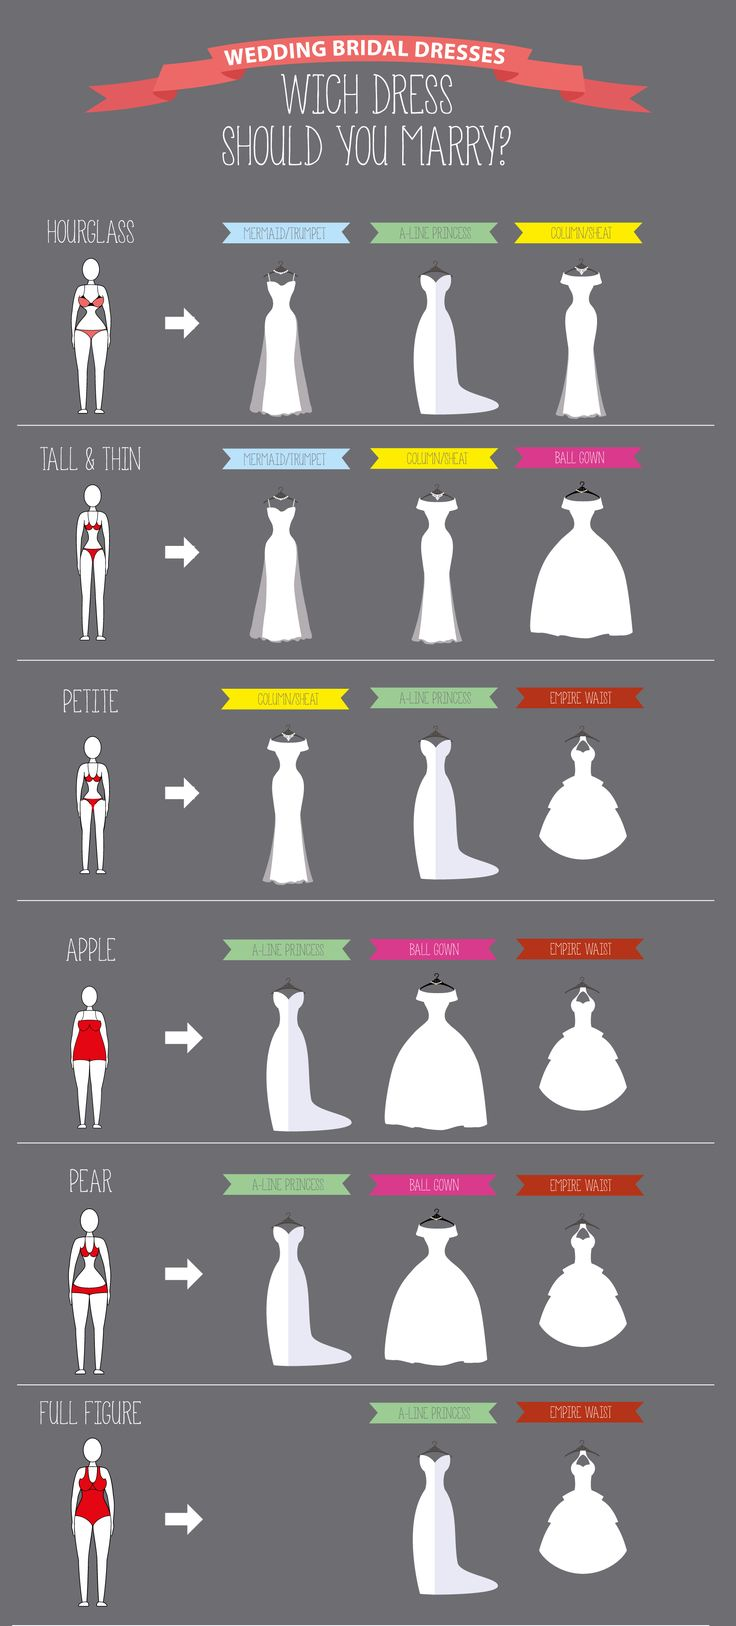 How to dress an apple shaped figure ehow - Ultimate Guide To Wedding Dresses Everything You Need To Know